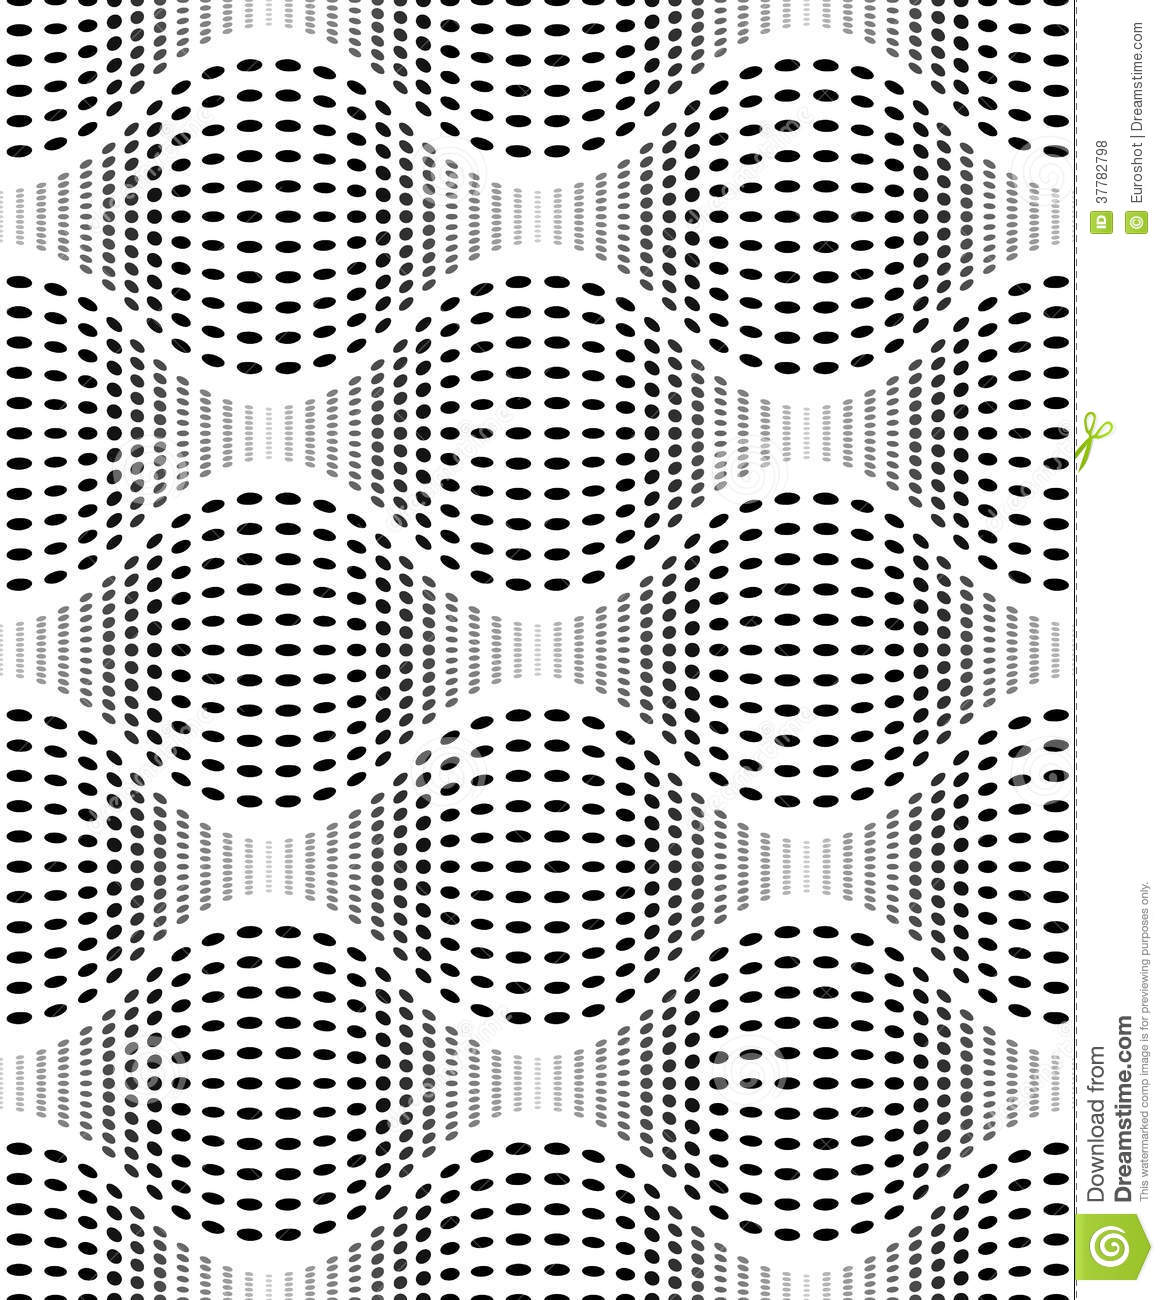 Iridescent Texture With Dots Vector Seamless Pattern